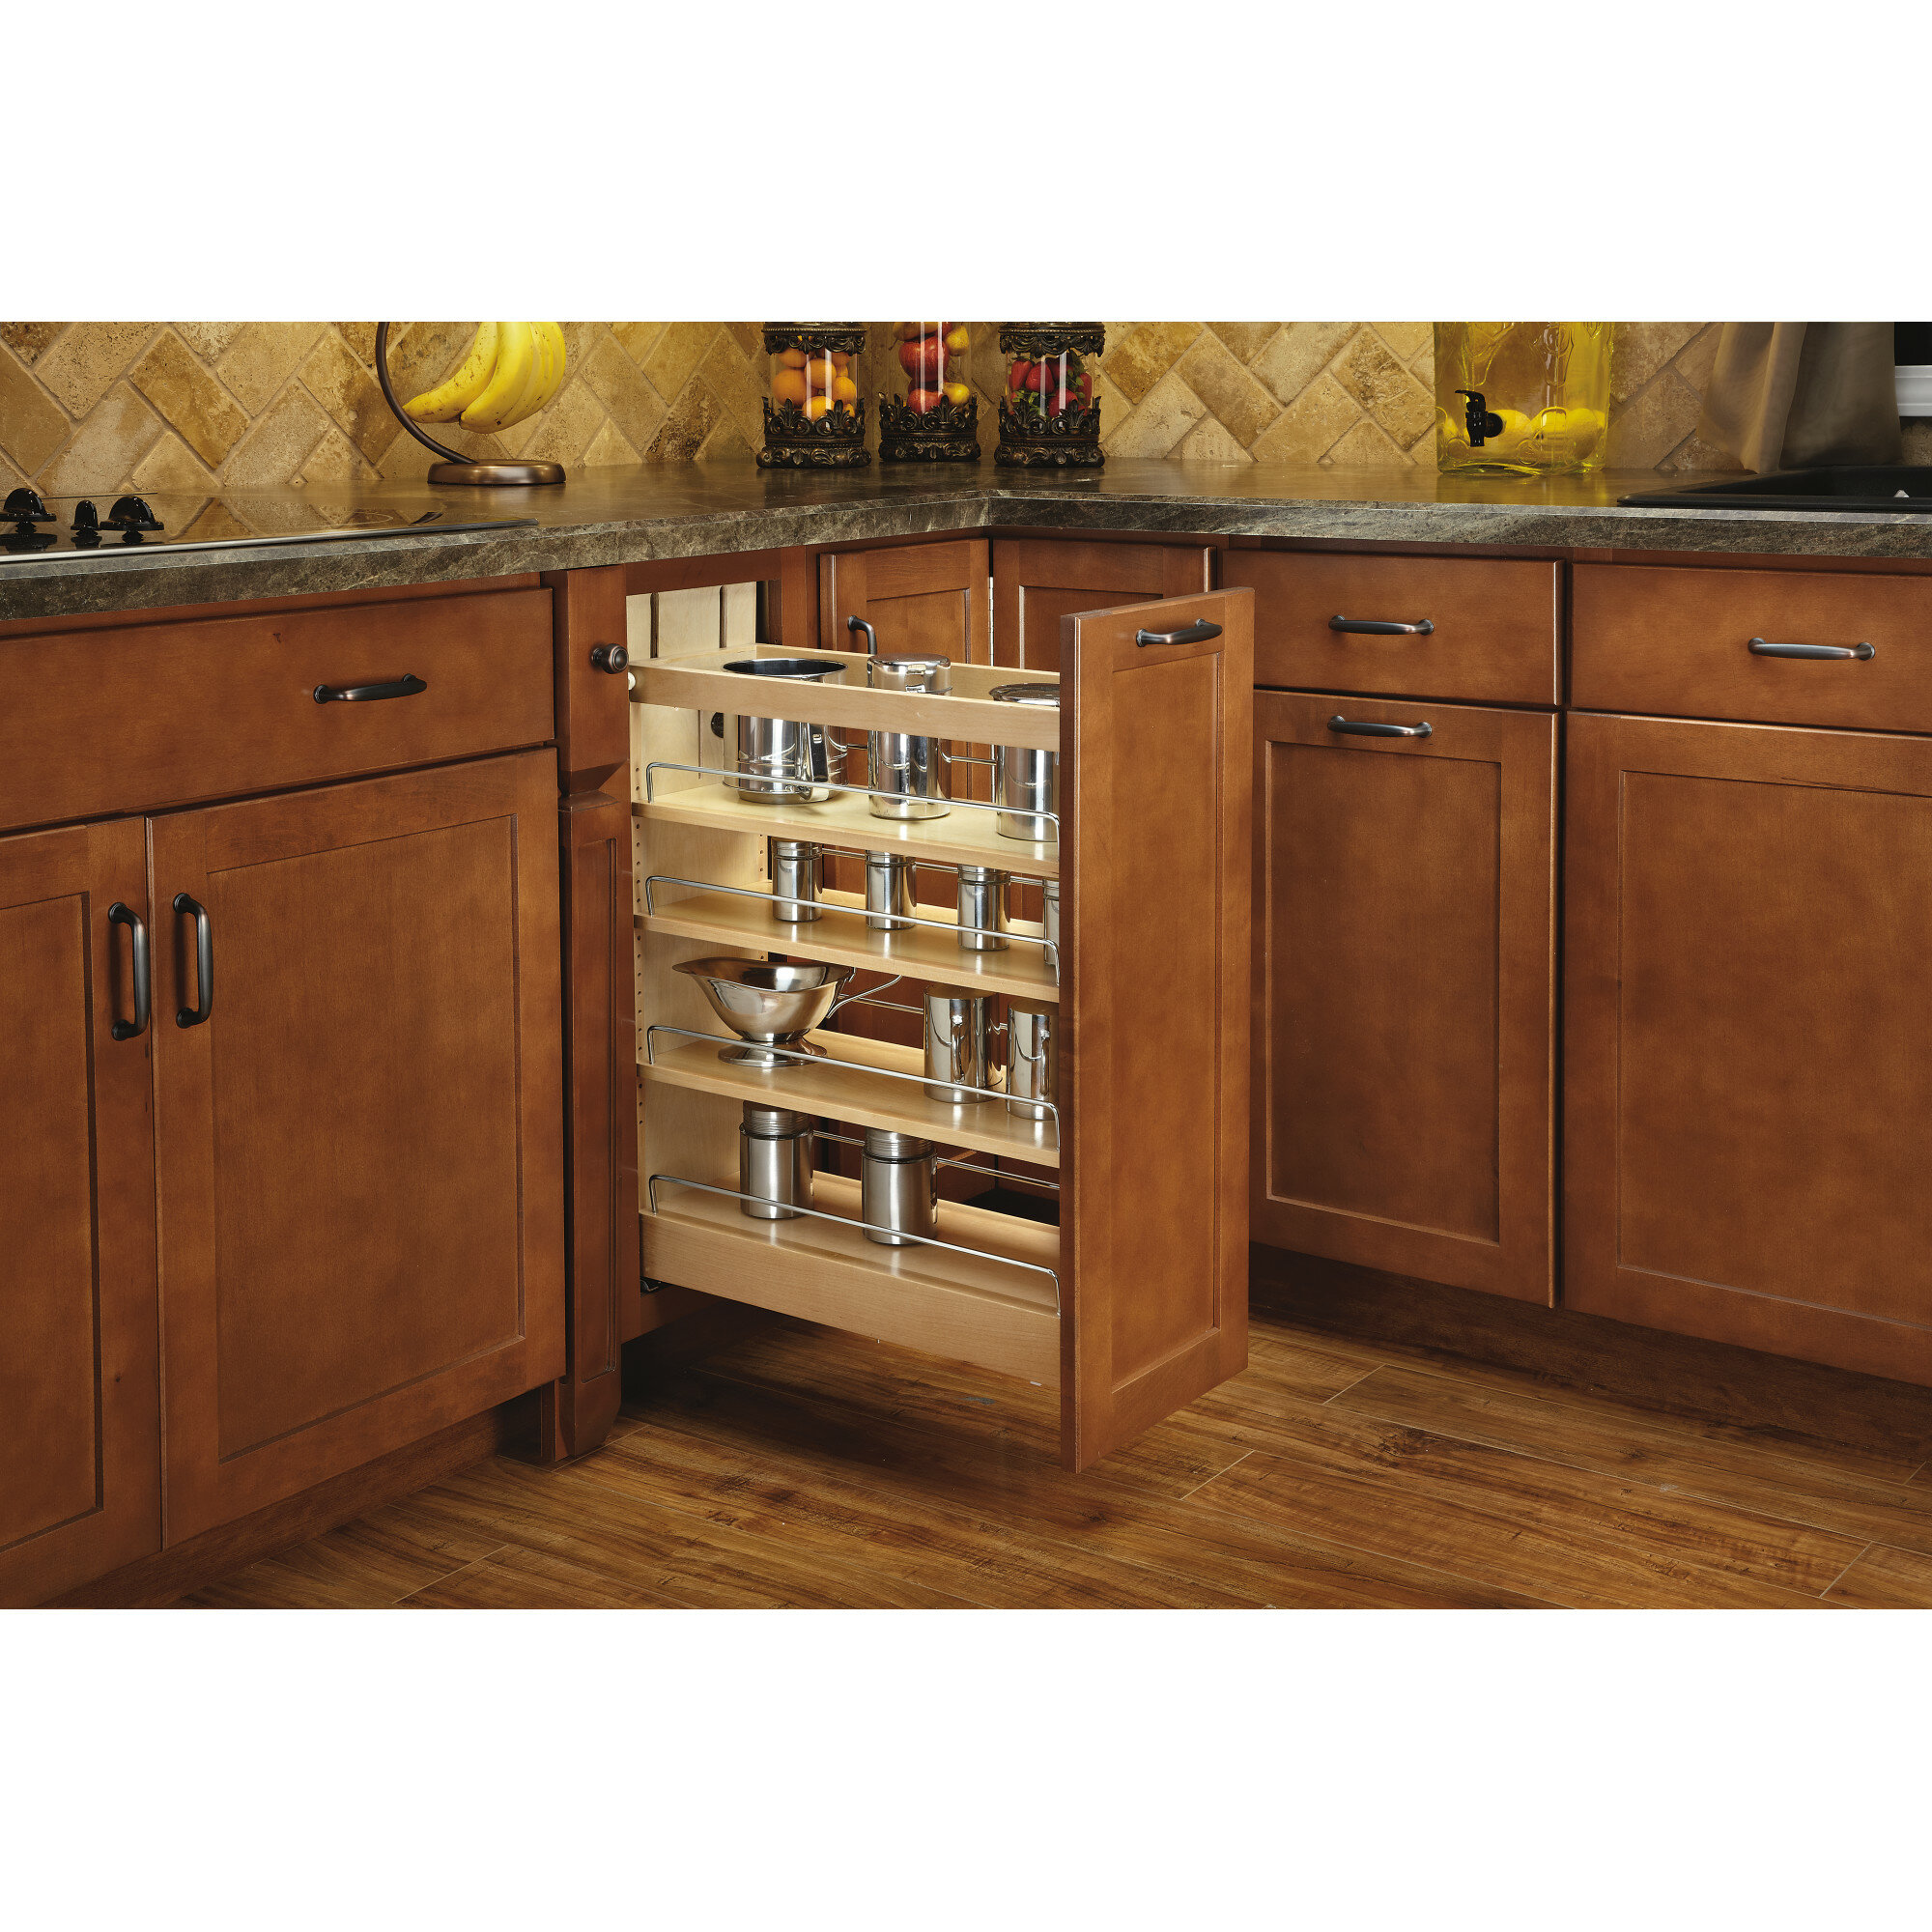 Picture of: Rev A Shelf Base Cabinet Organizer Soft Close Pull Out Pantry